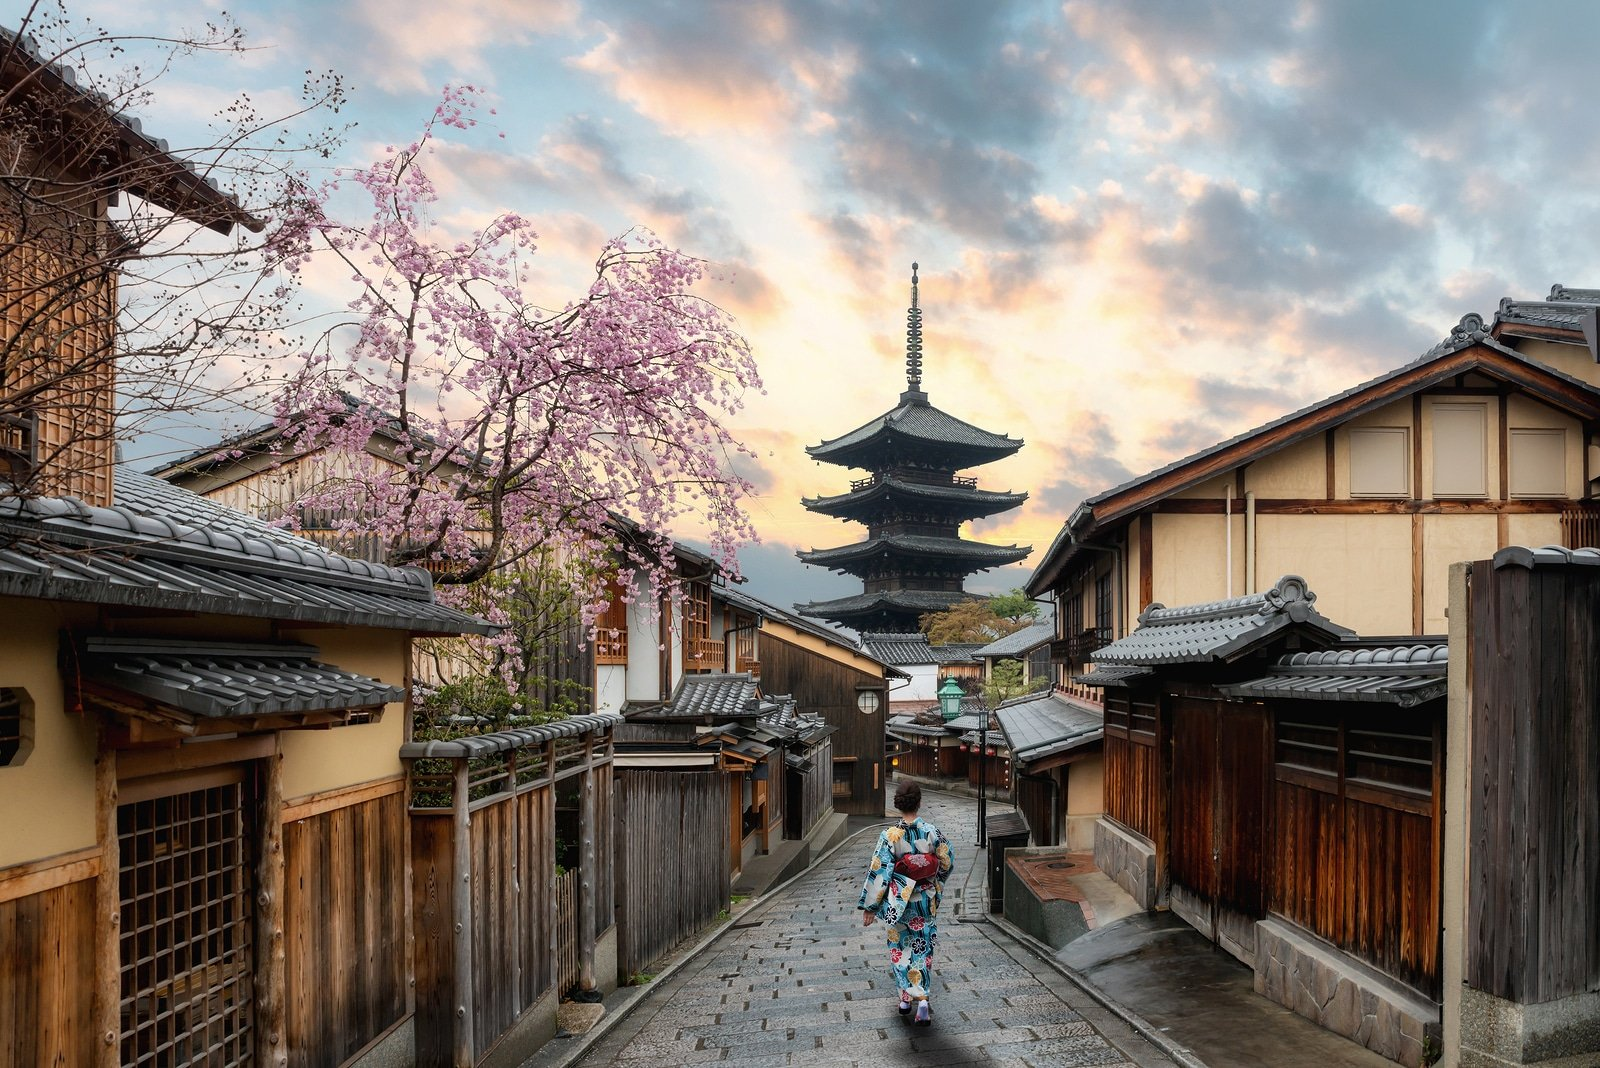 Spring flower destinations: Kyoto sakura season